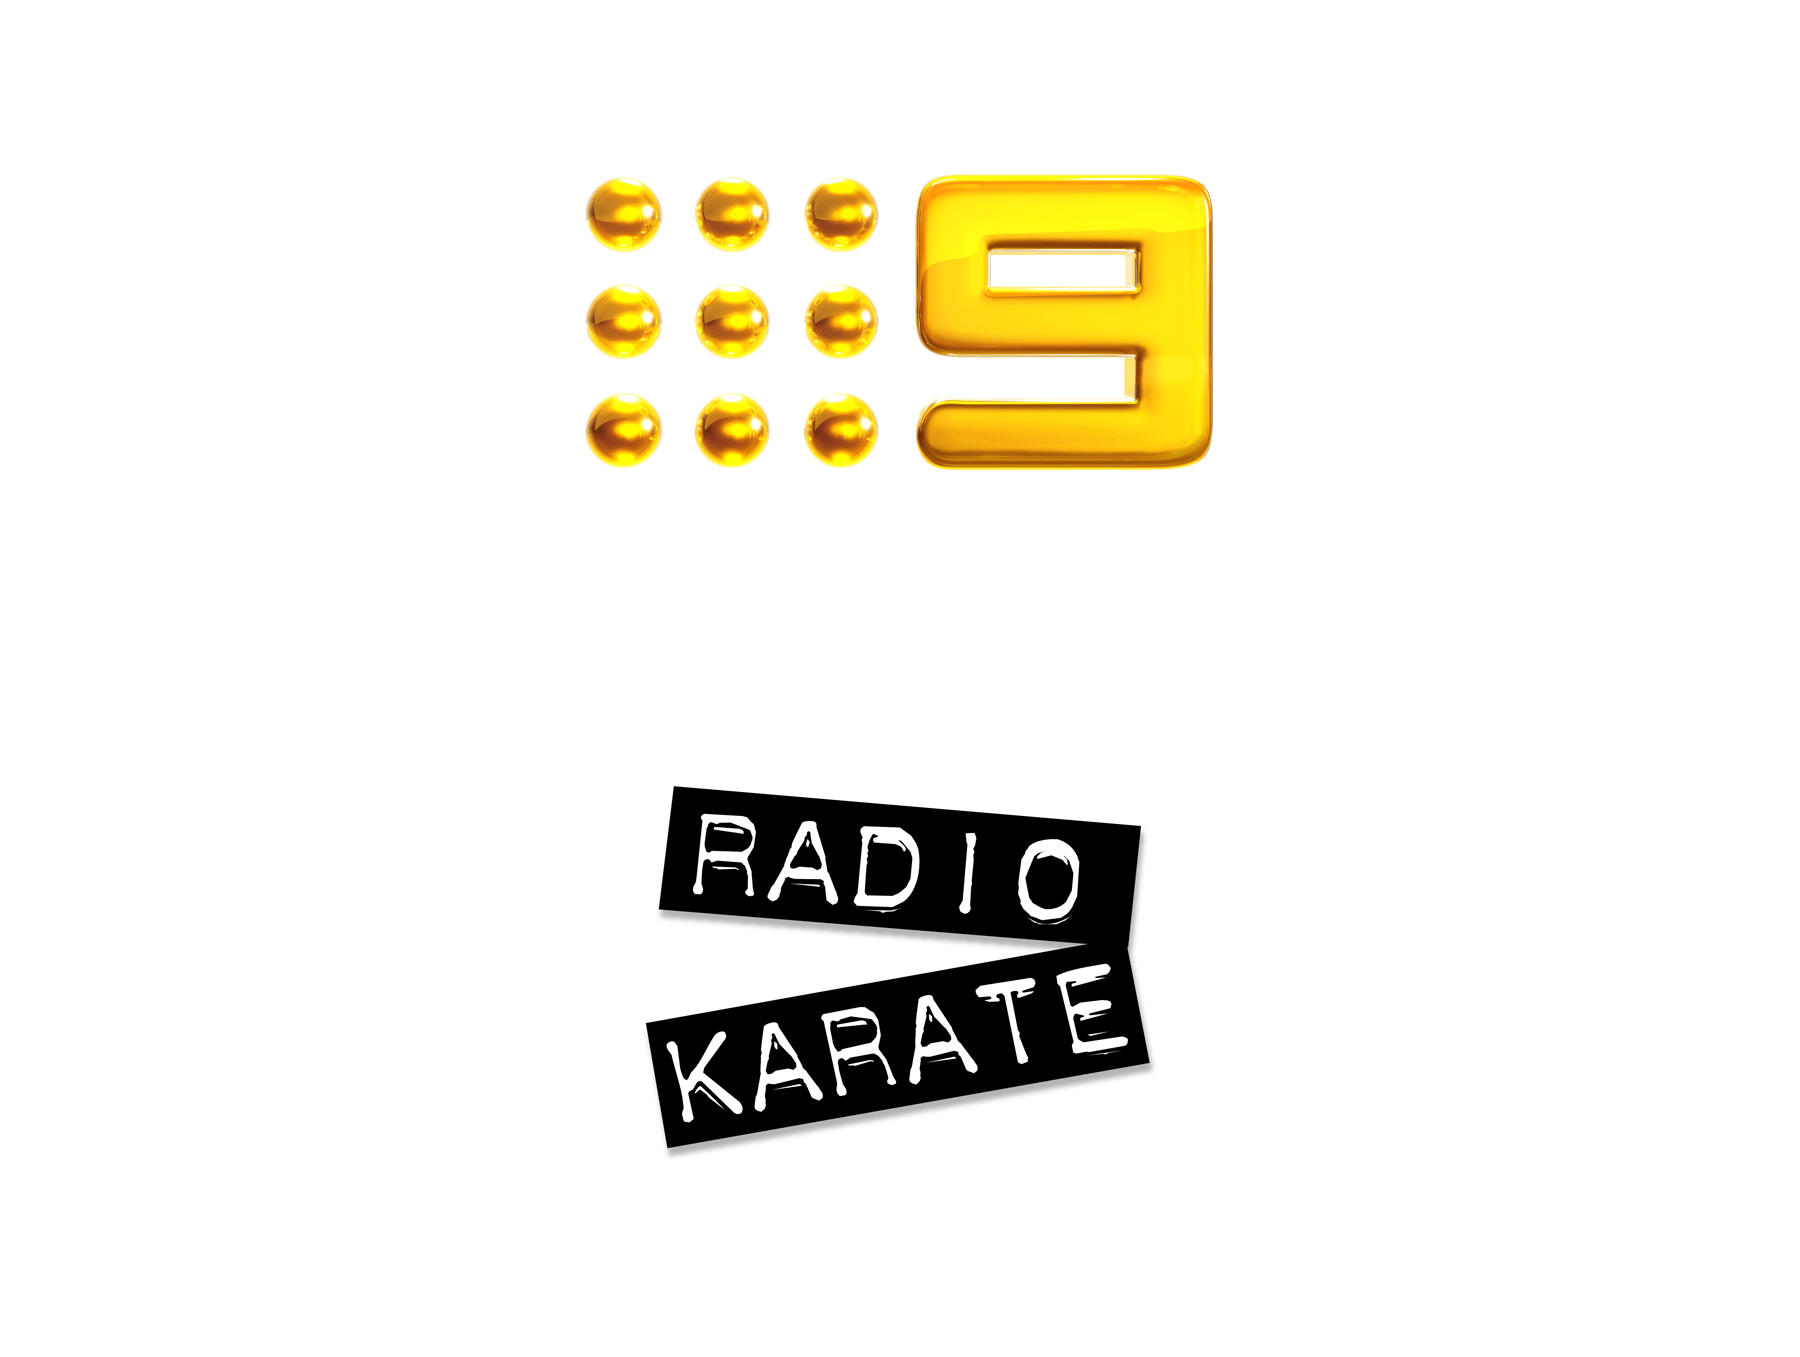 Channel 9 & Radio Karate